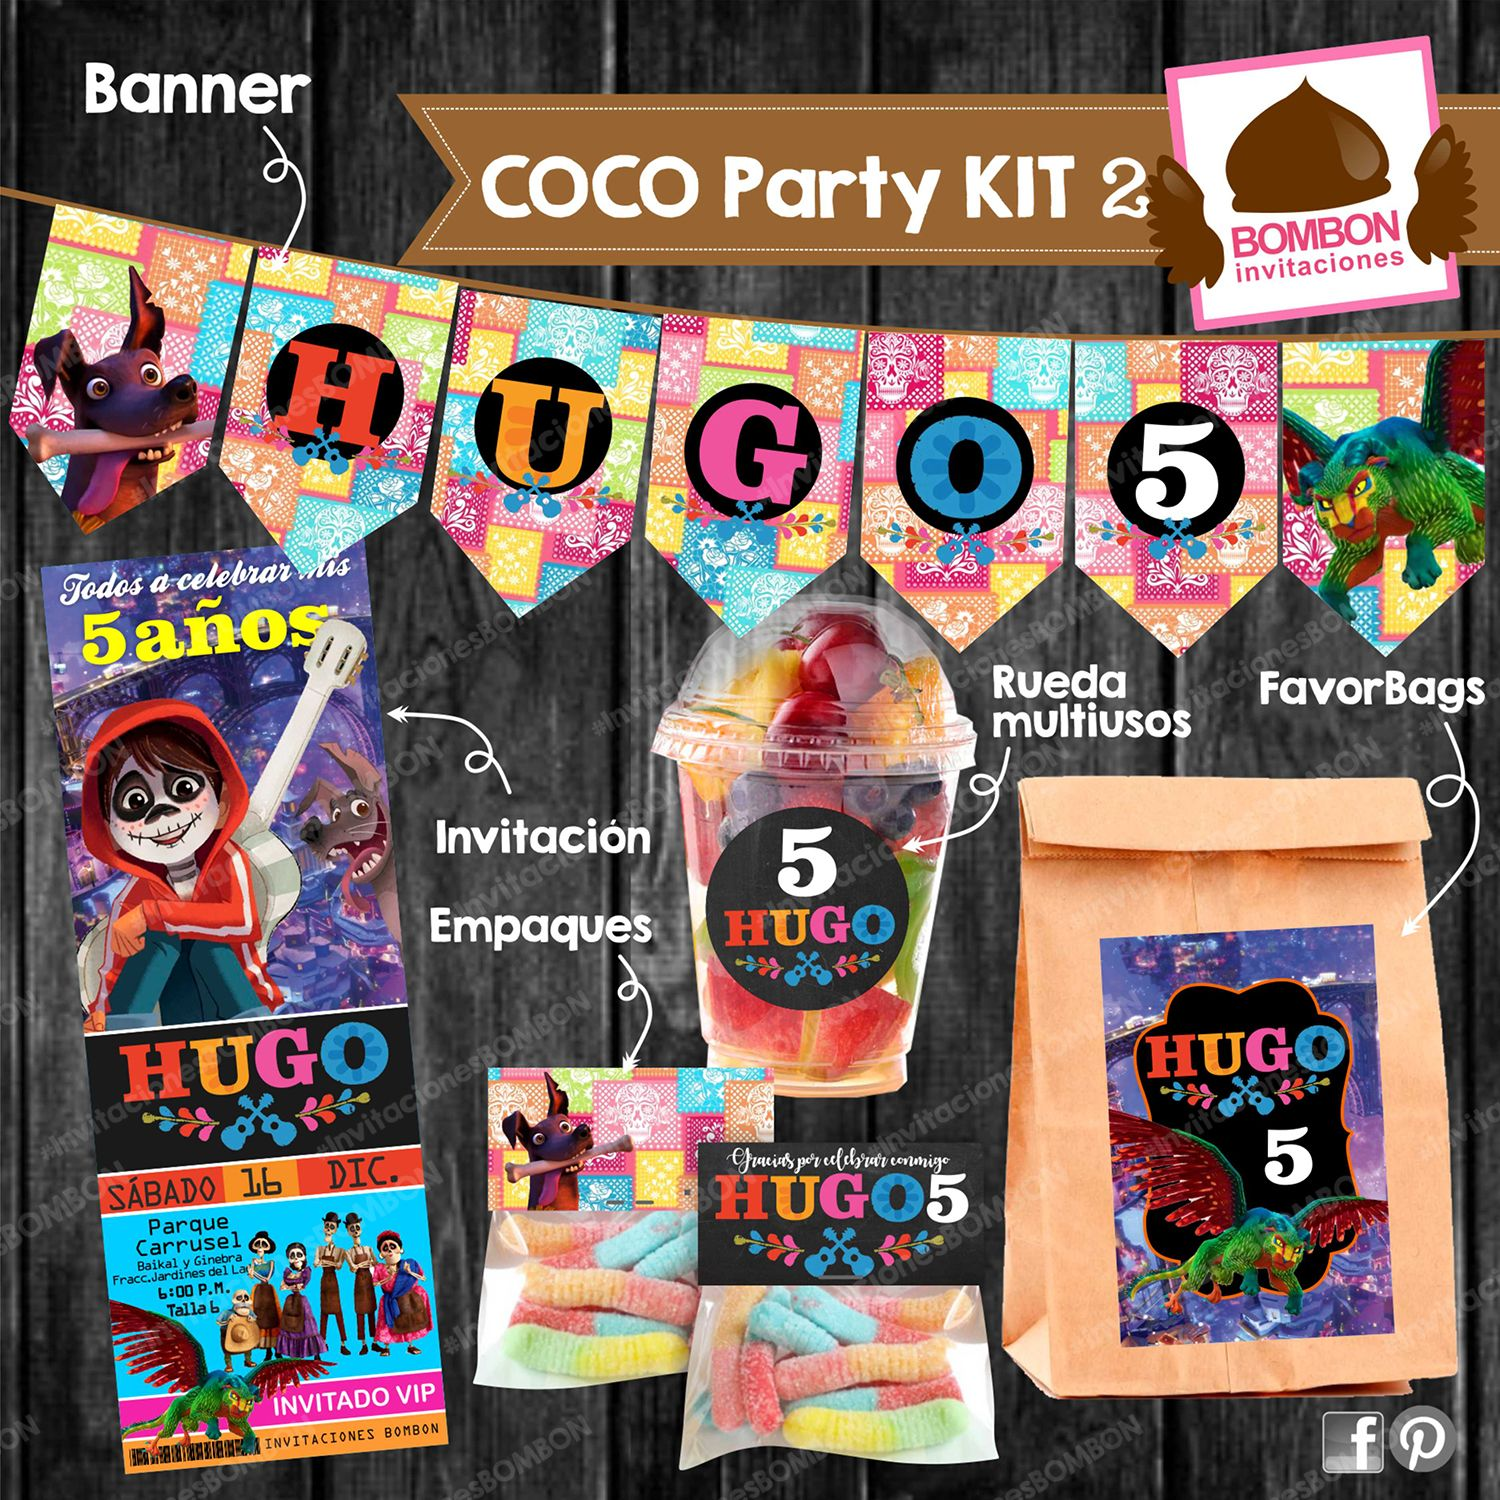 Pin by eryn cornell on day of the dead party pinterest for Imagenes de coco